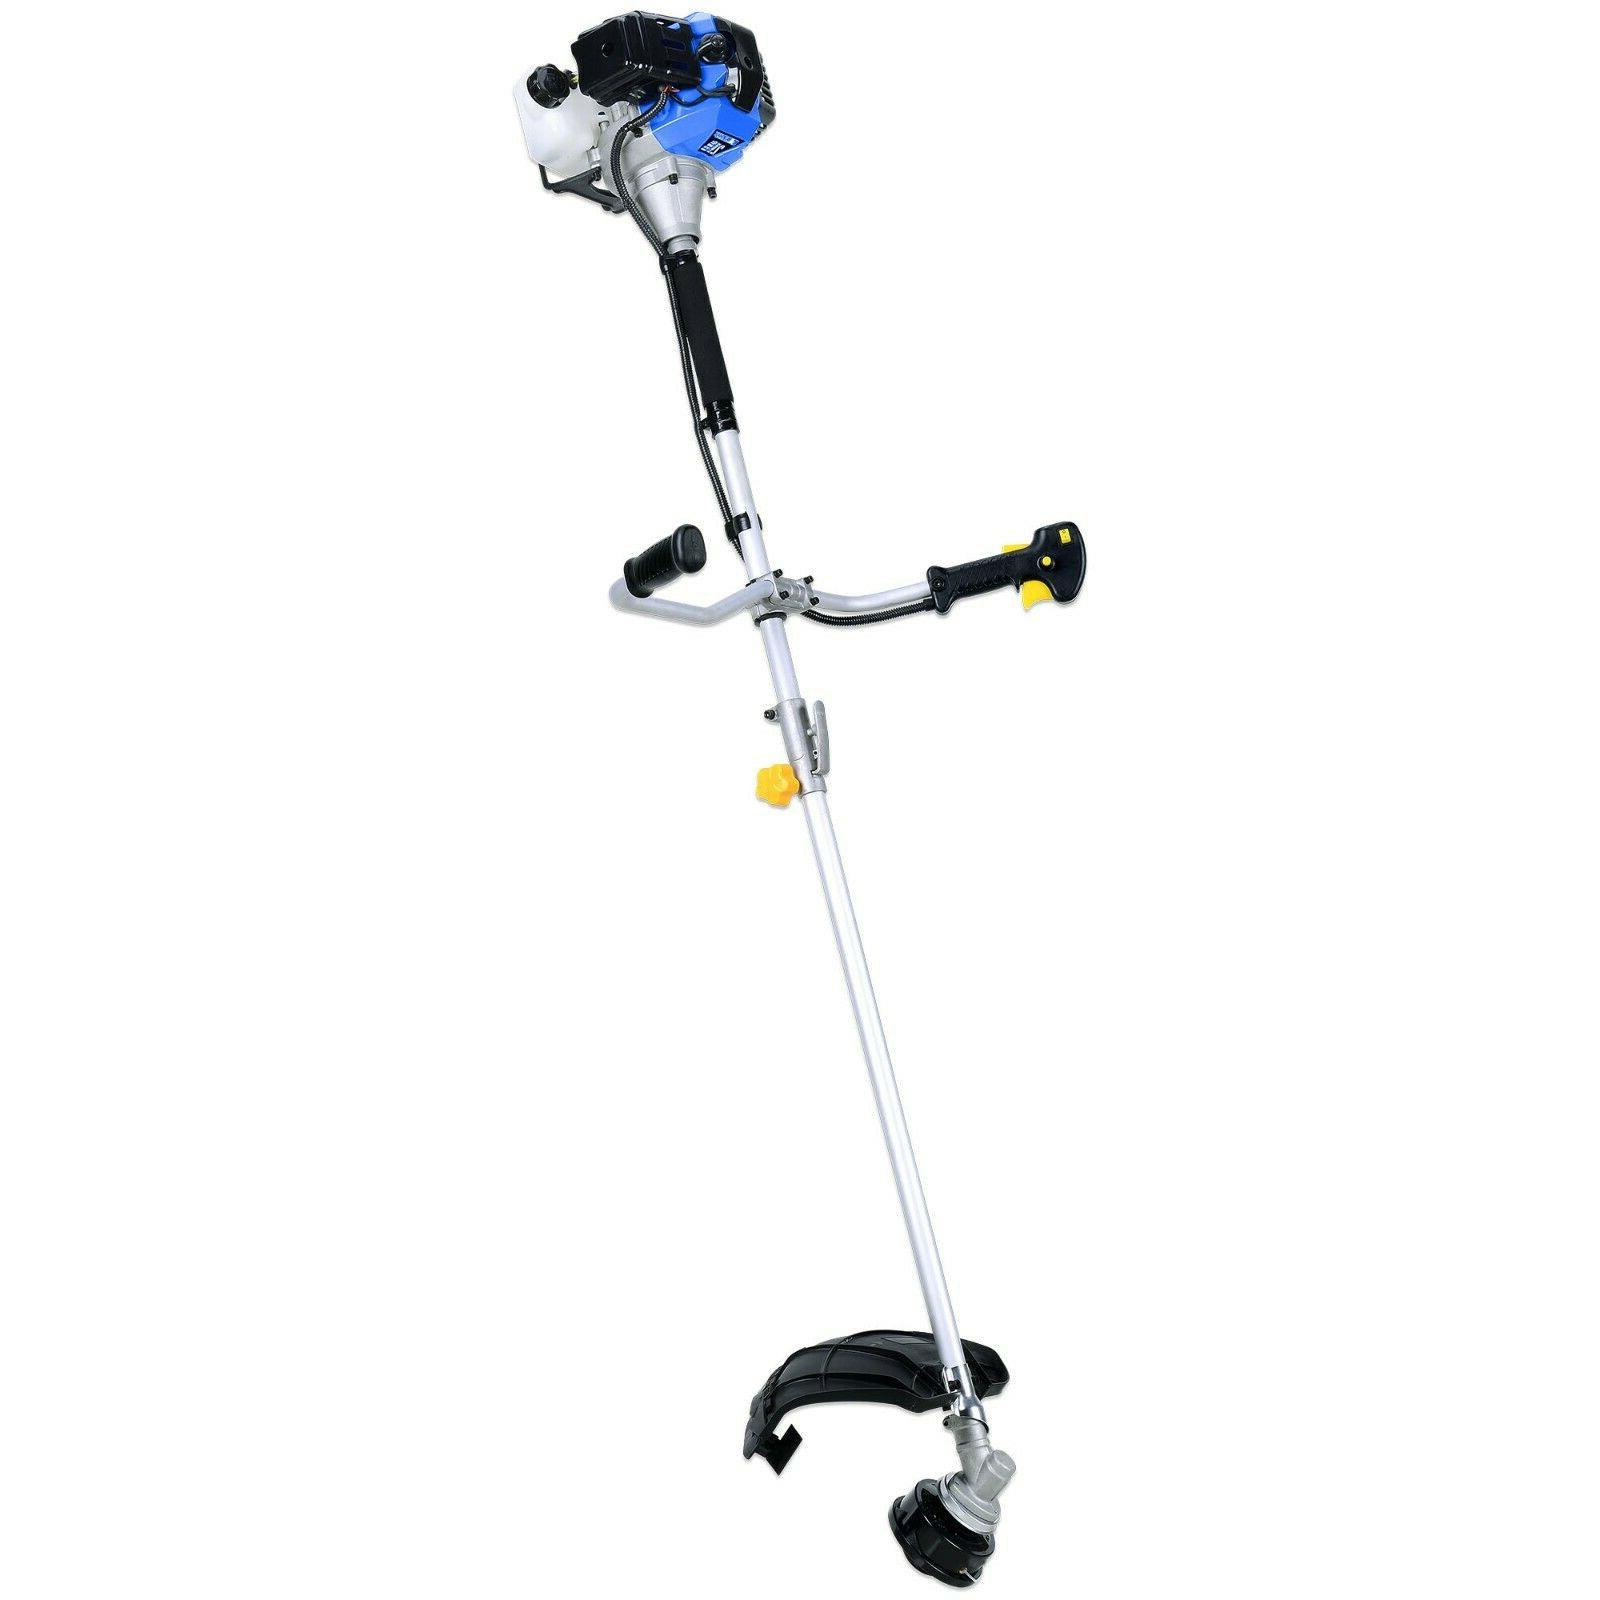 straight shaft trimmer gas weed eater brush